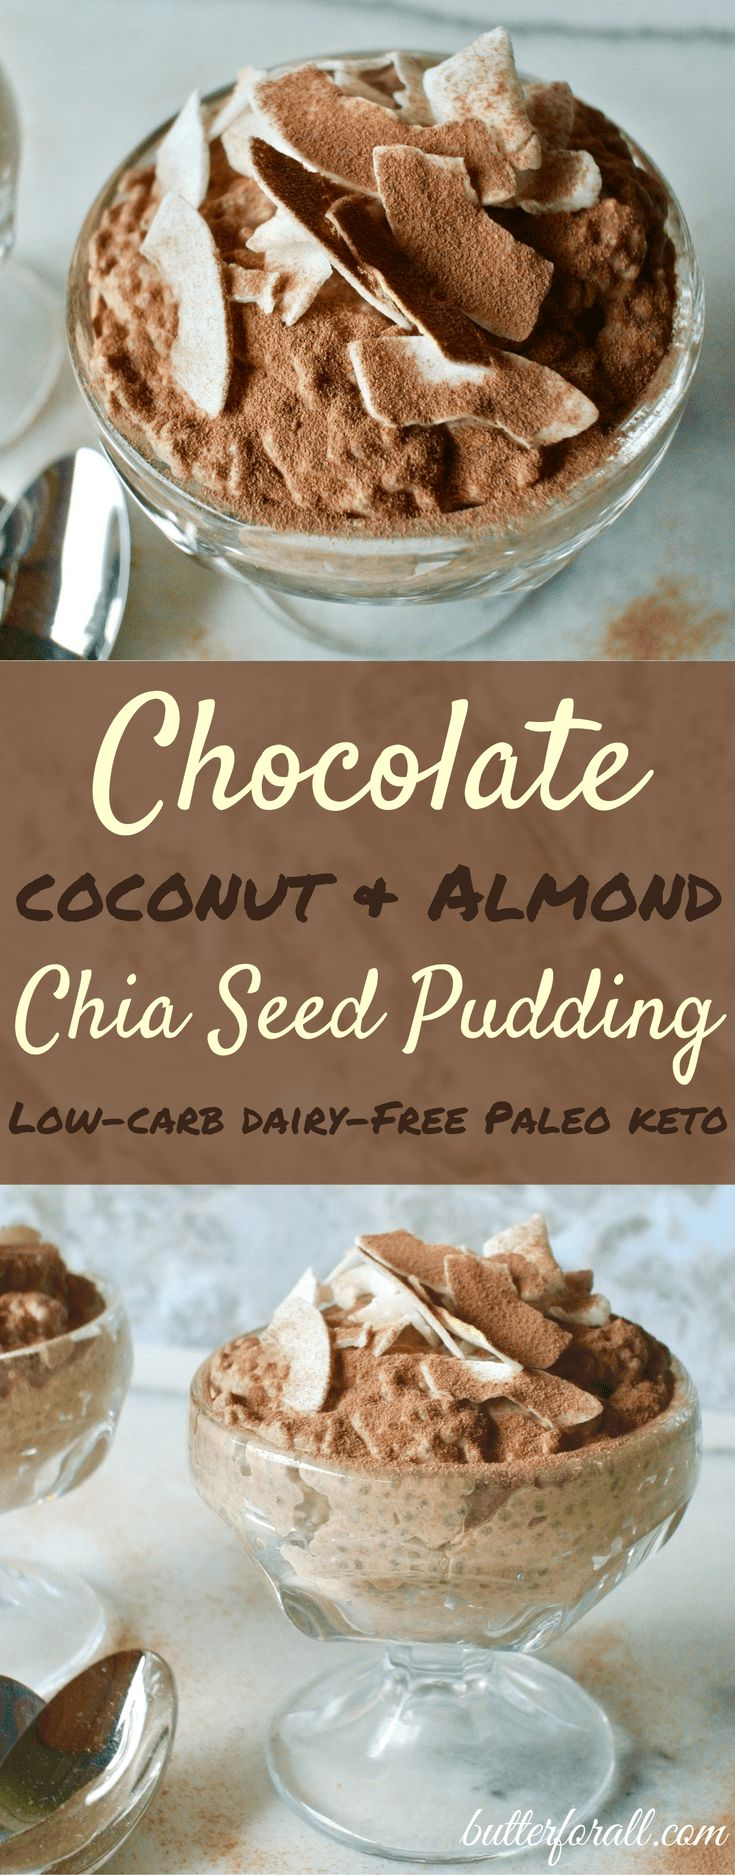 Chocolate, Coconut, and Almond Chia Seed Pudding